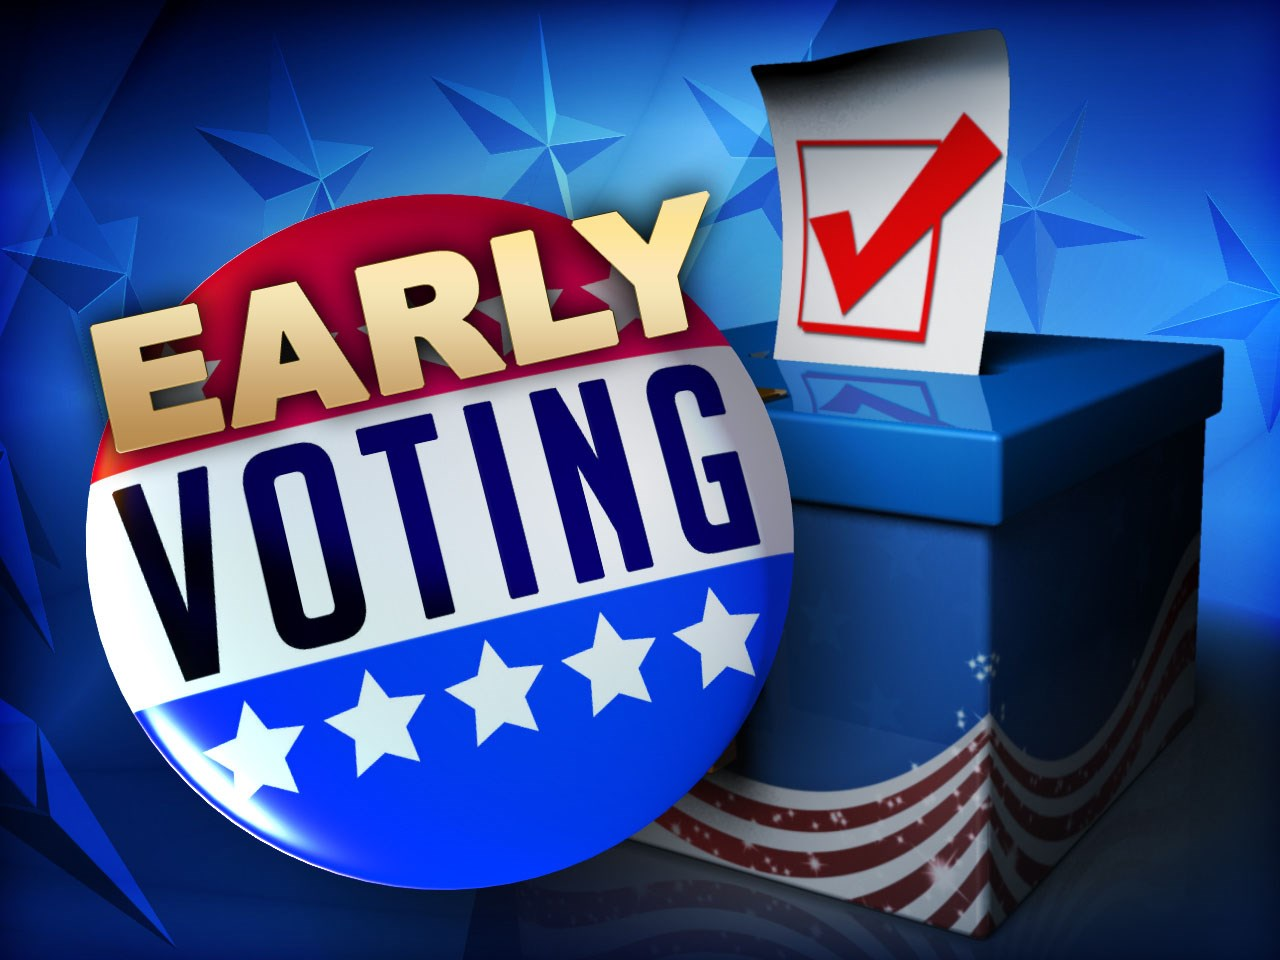 EarlyVoting_1477499313182.jpg